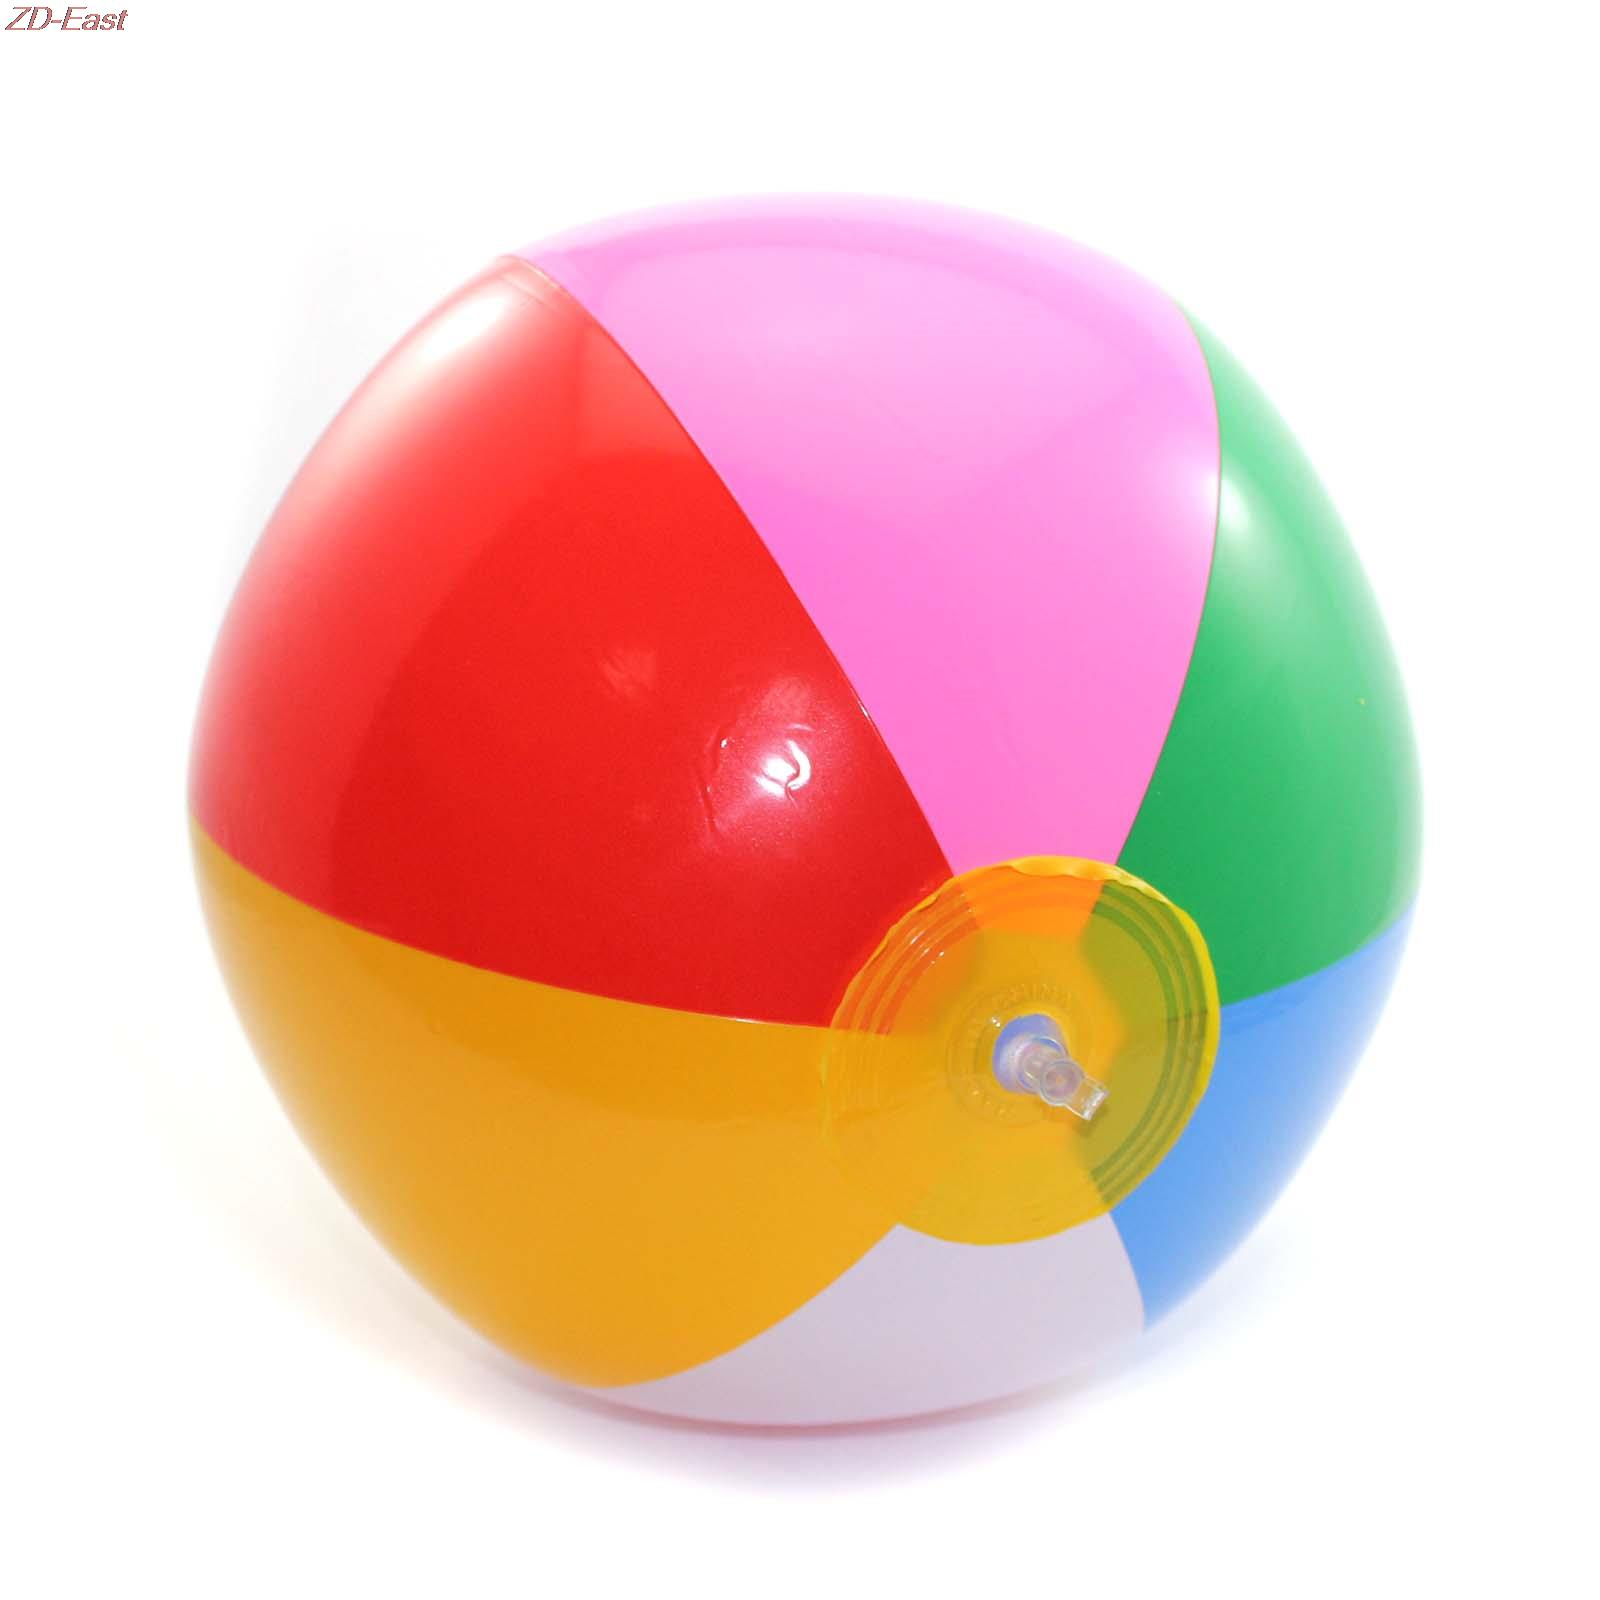 2016 New Funny Kids Swimming Pool Beach Playing Water Game Toy Inflatable Rubber Ball kids toys(China (Mainland))